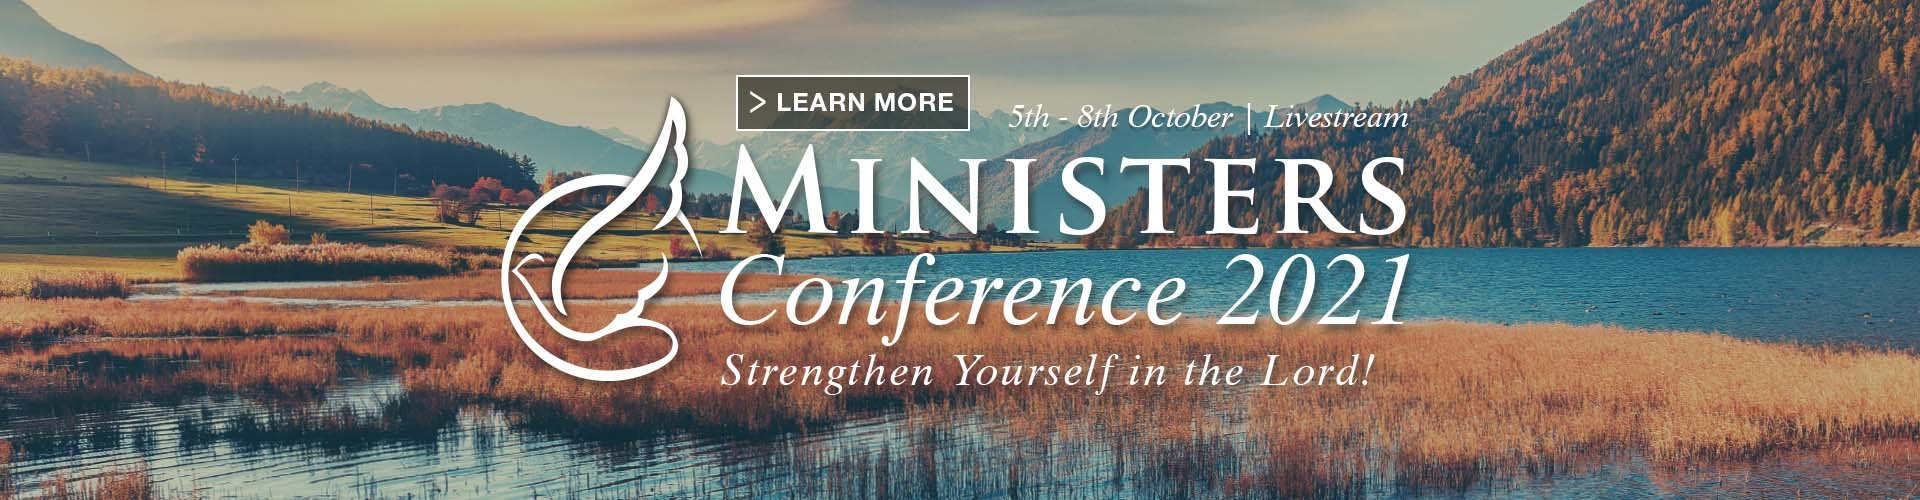 Ministers Conference 2021